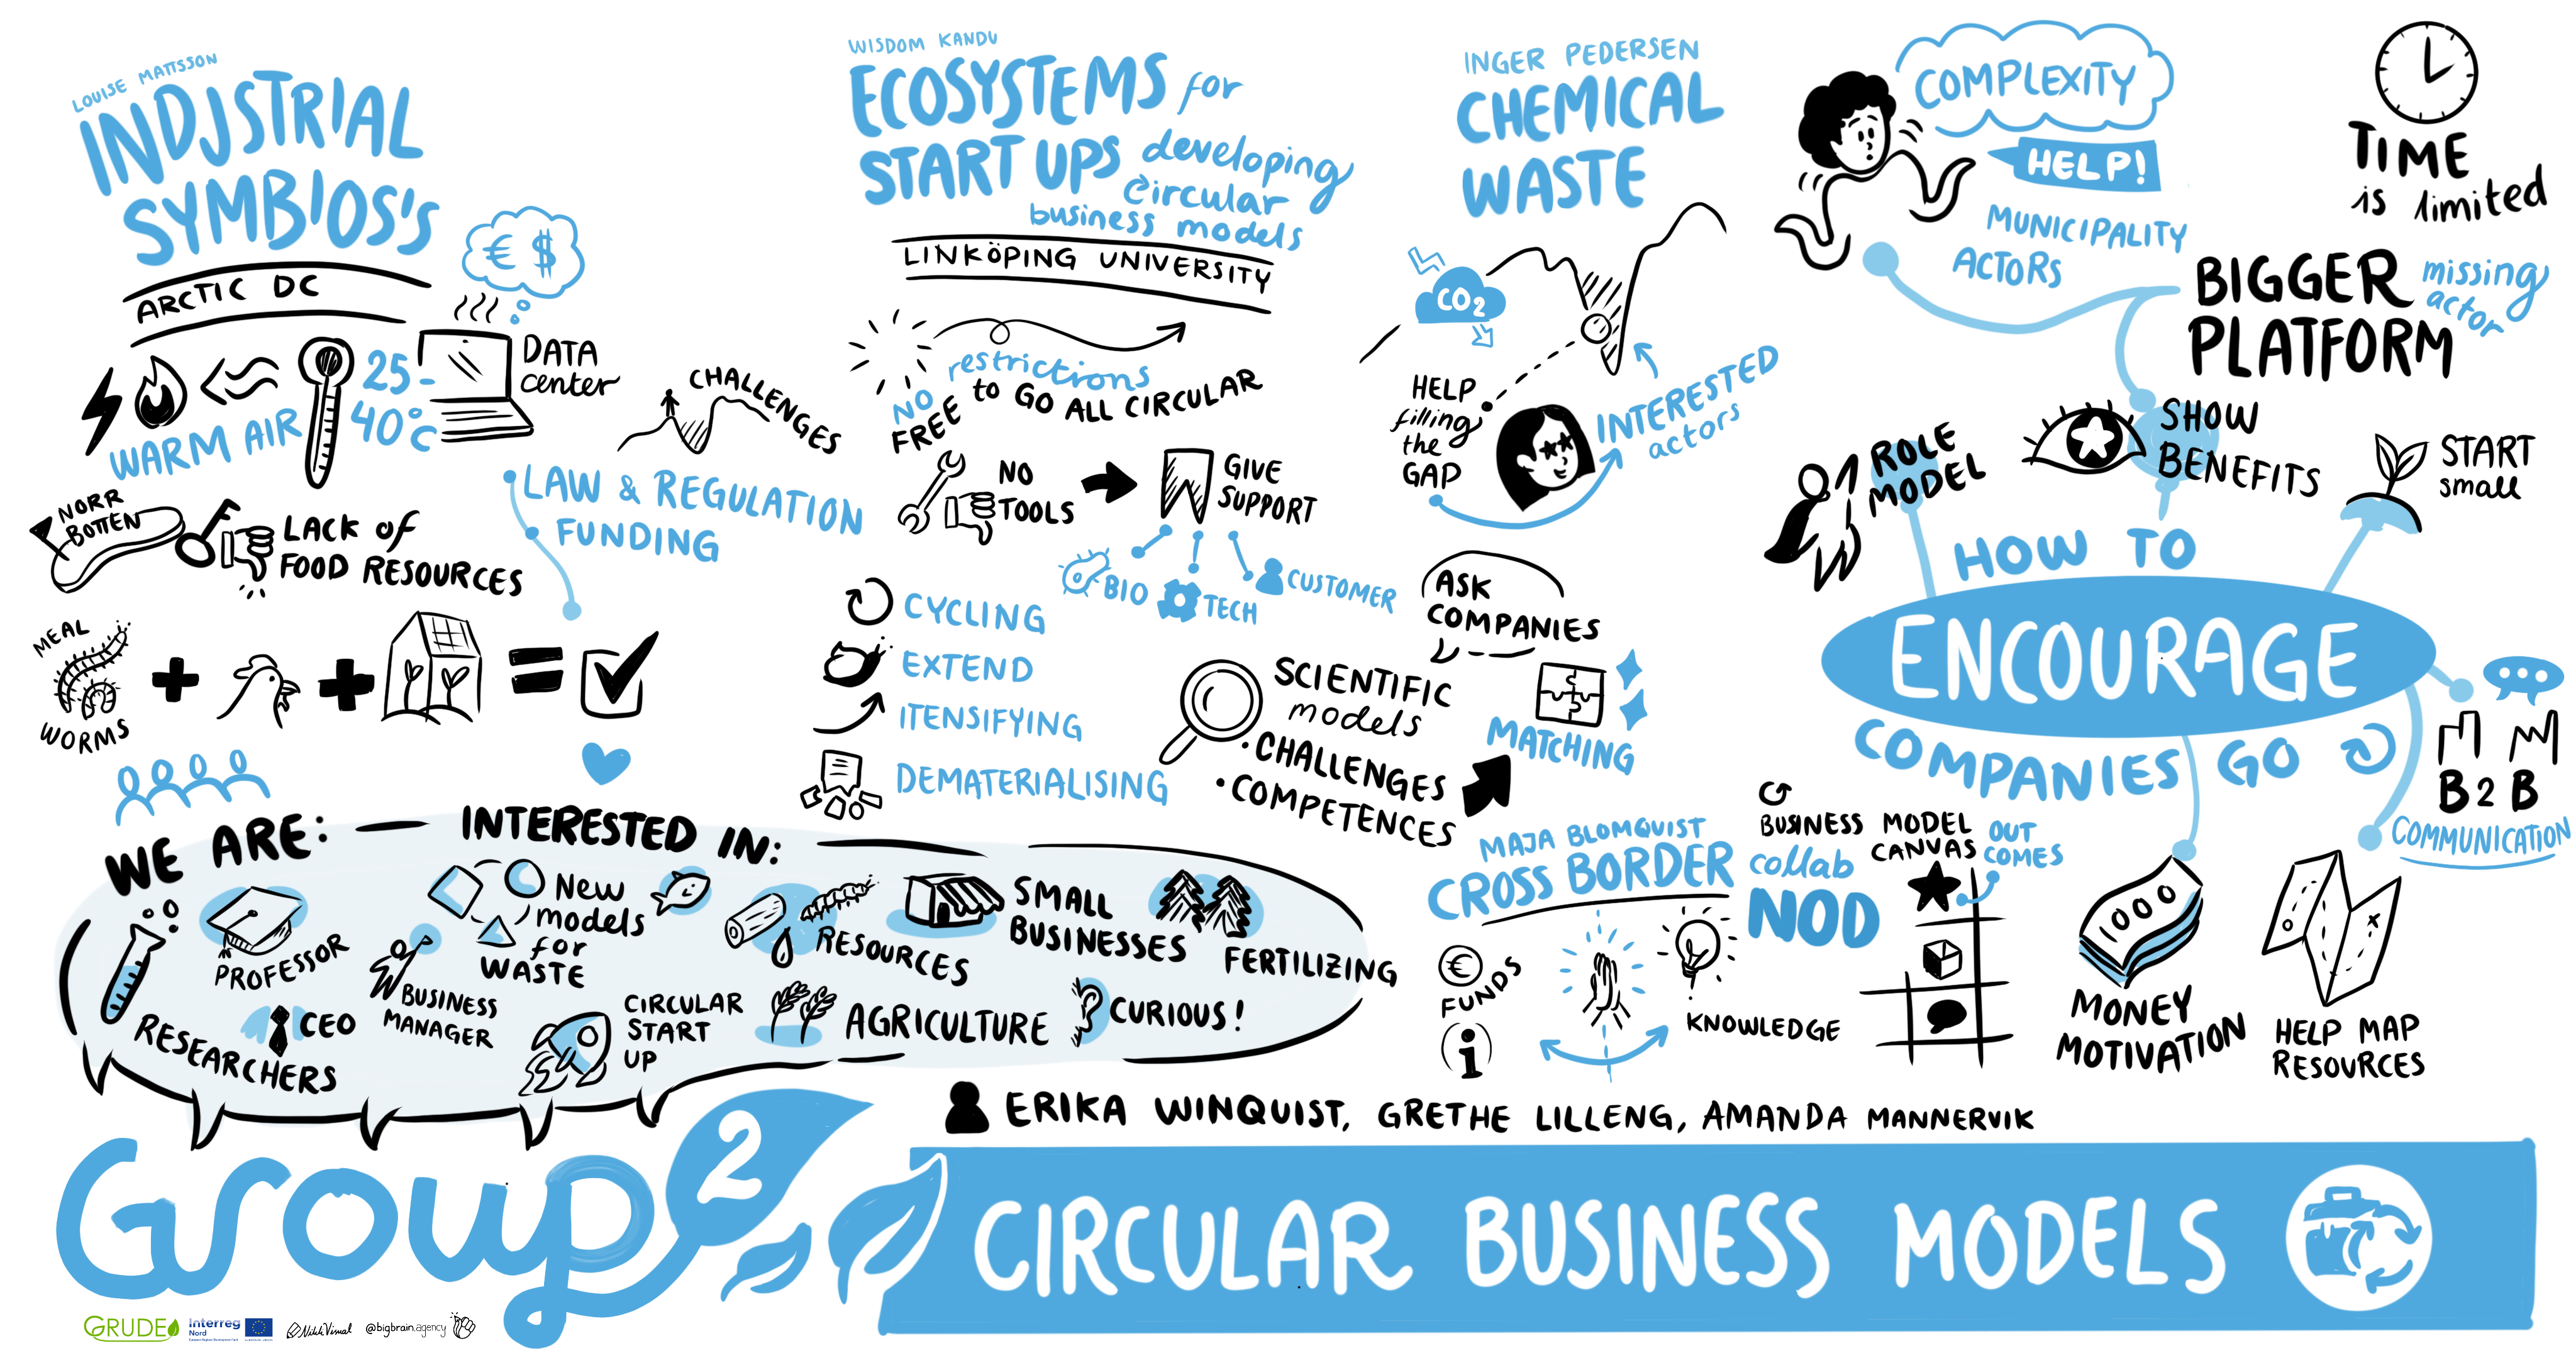 Circular Business Models – Summary from the Group Session